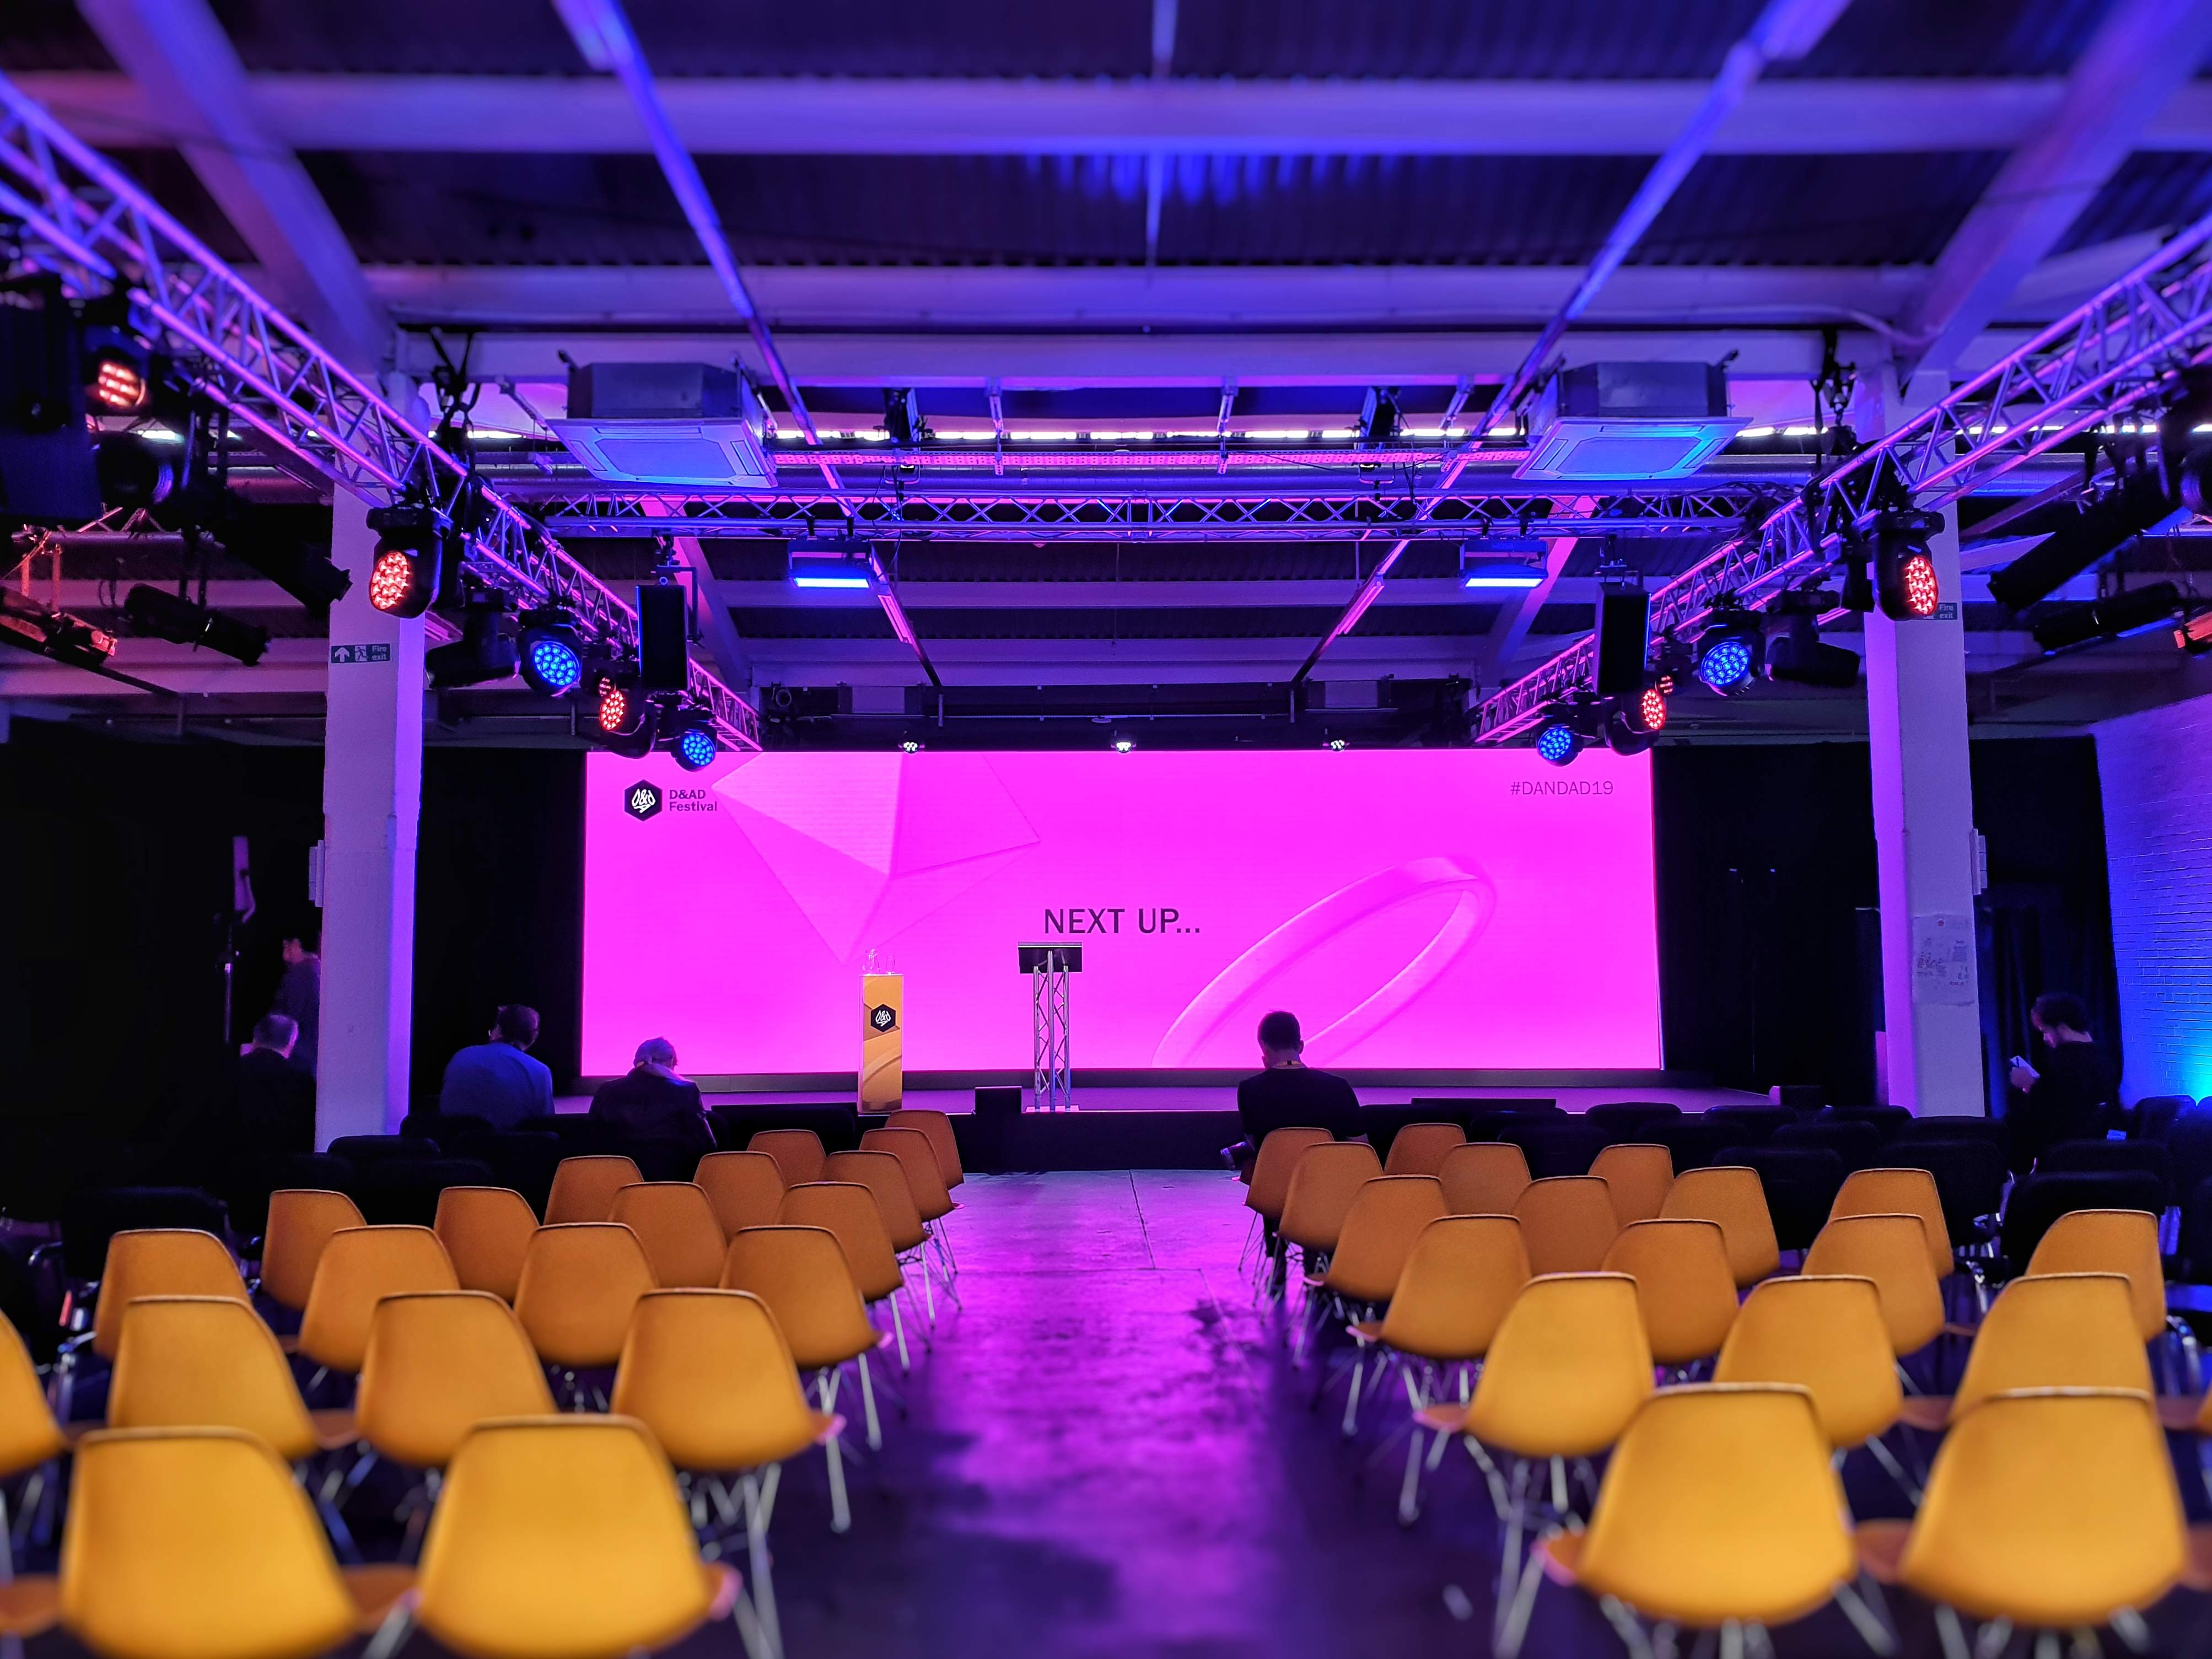 D&AD Festival – Looking Back at Previous Years